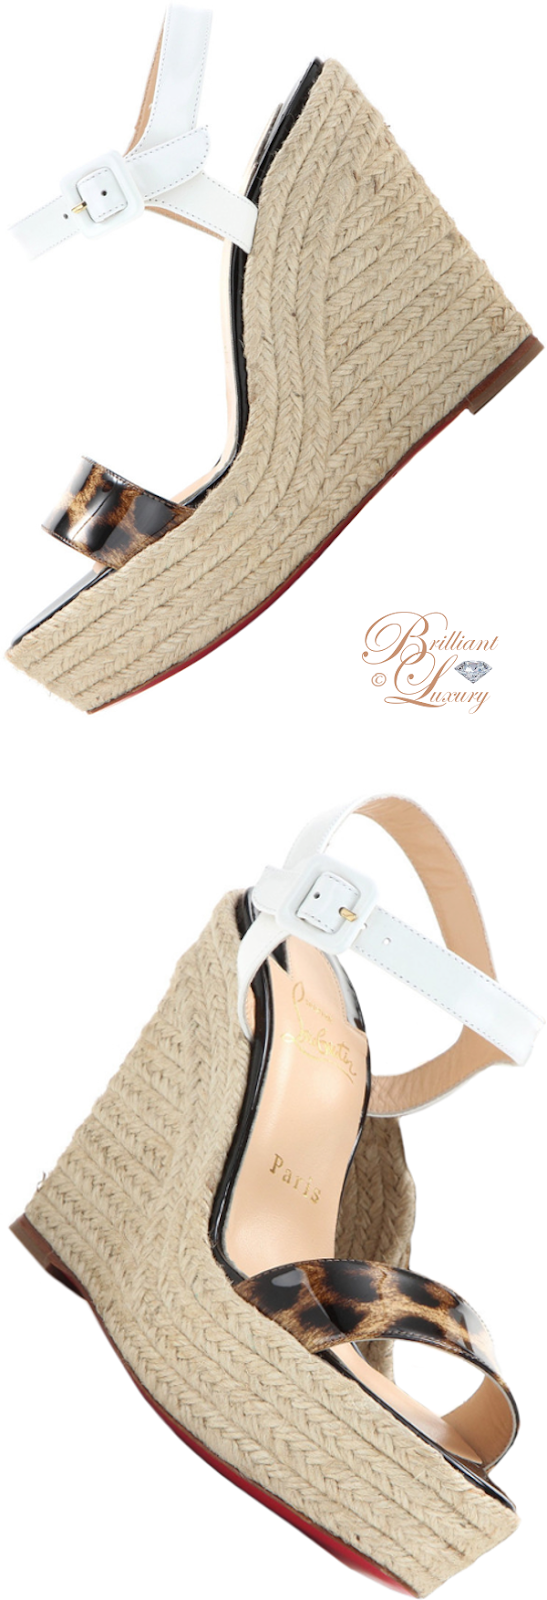 Brilliant Luxury ♦ Christian Louboutin Spachica wedge